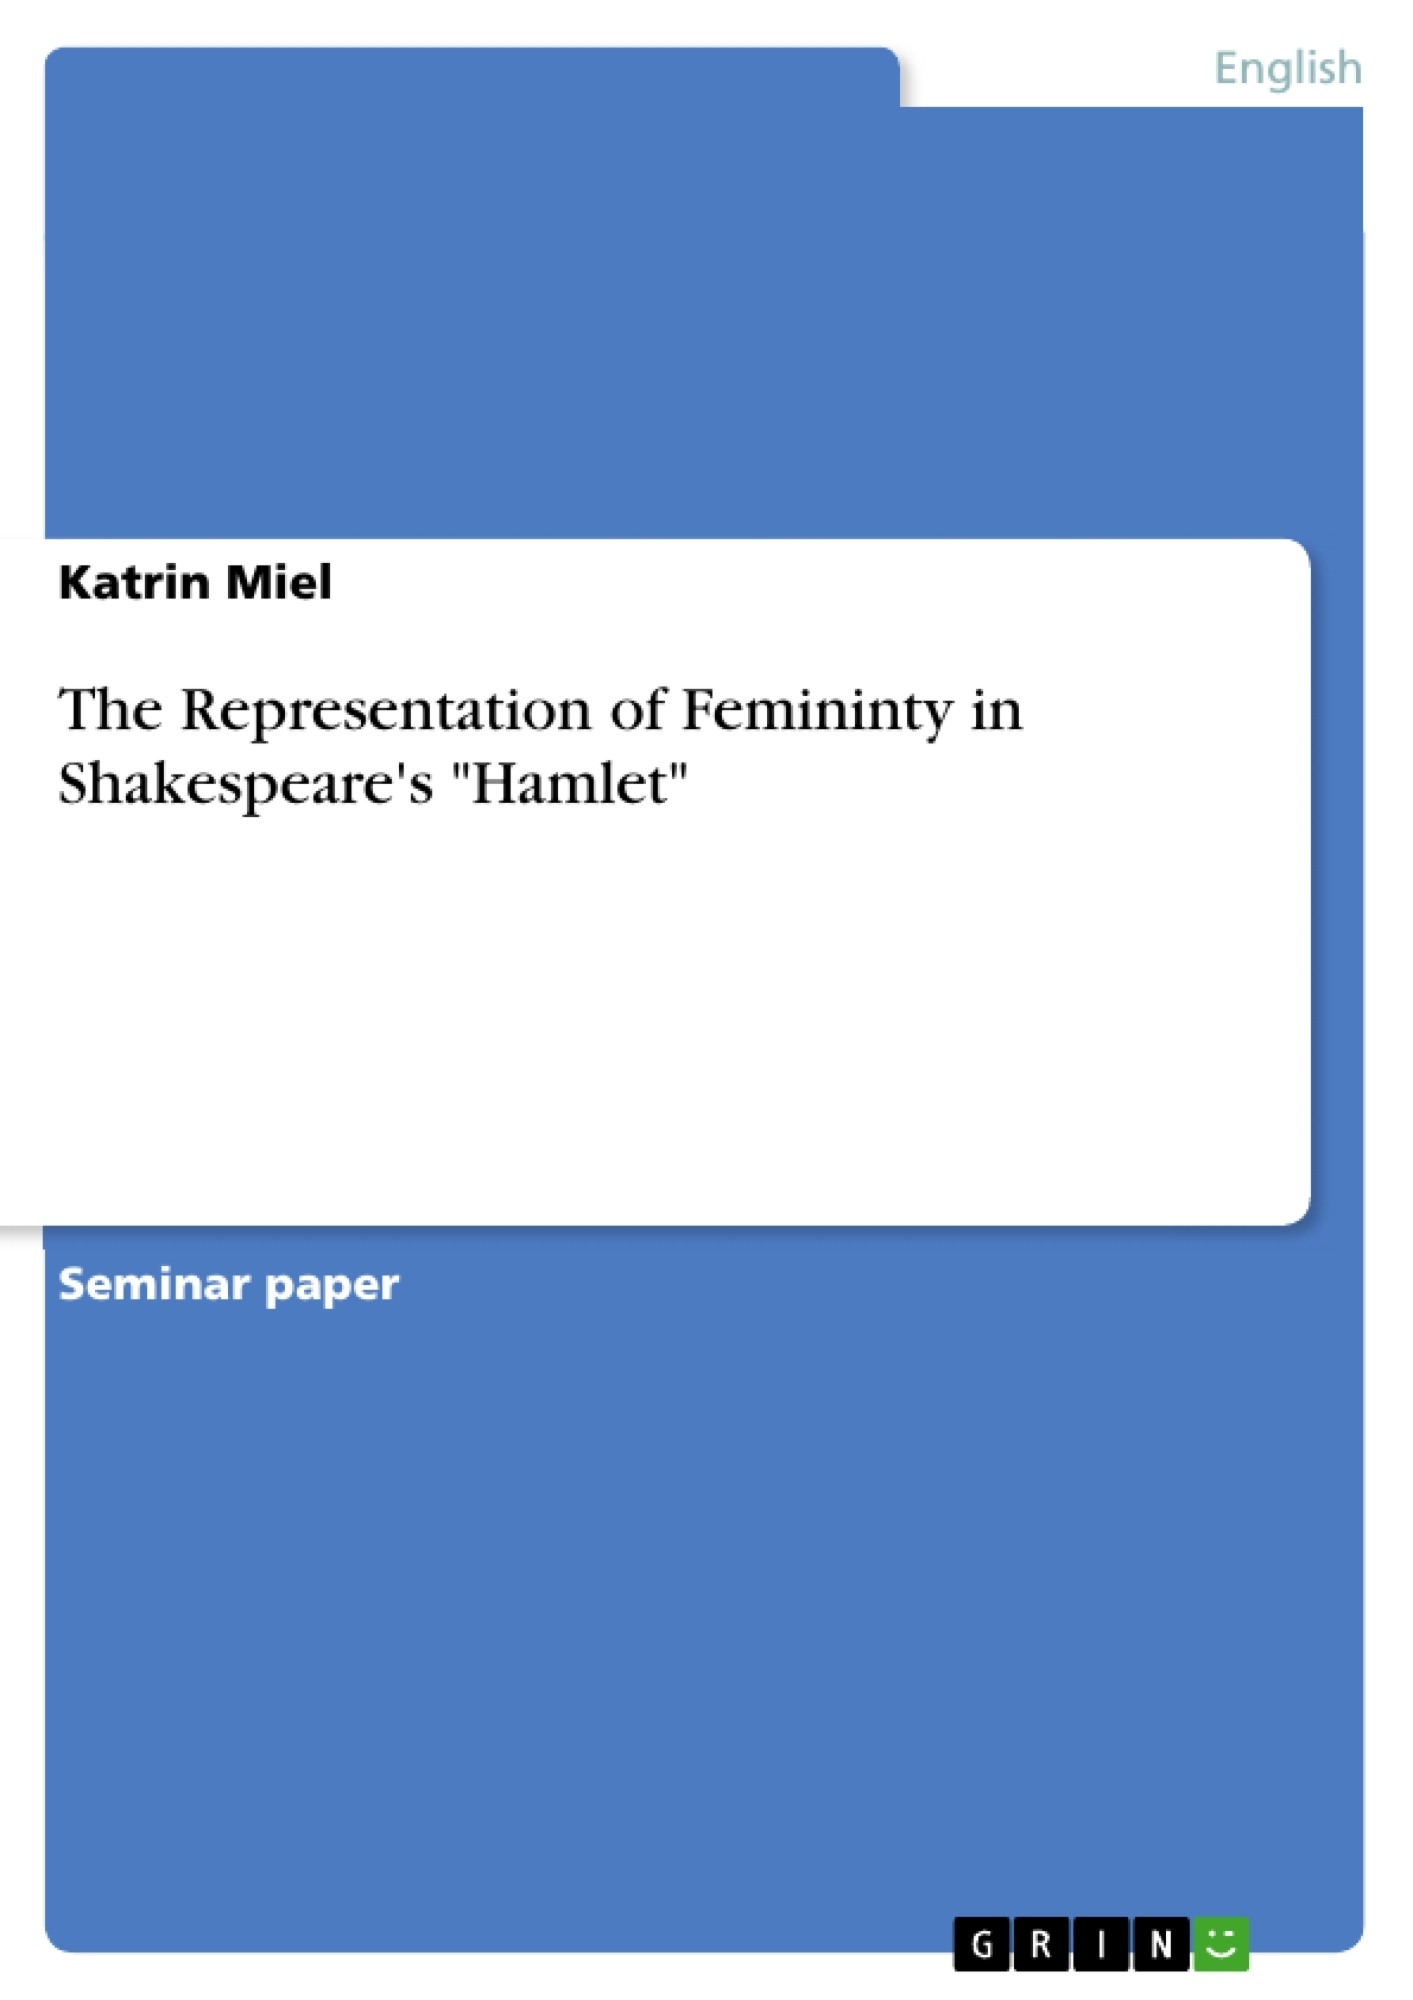 production history of hamlet essay Suggested essay topics  has left many details of shakespeare's personal history shrouded in mystery  is a world of appearances, and hamlet is .